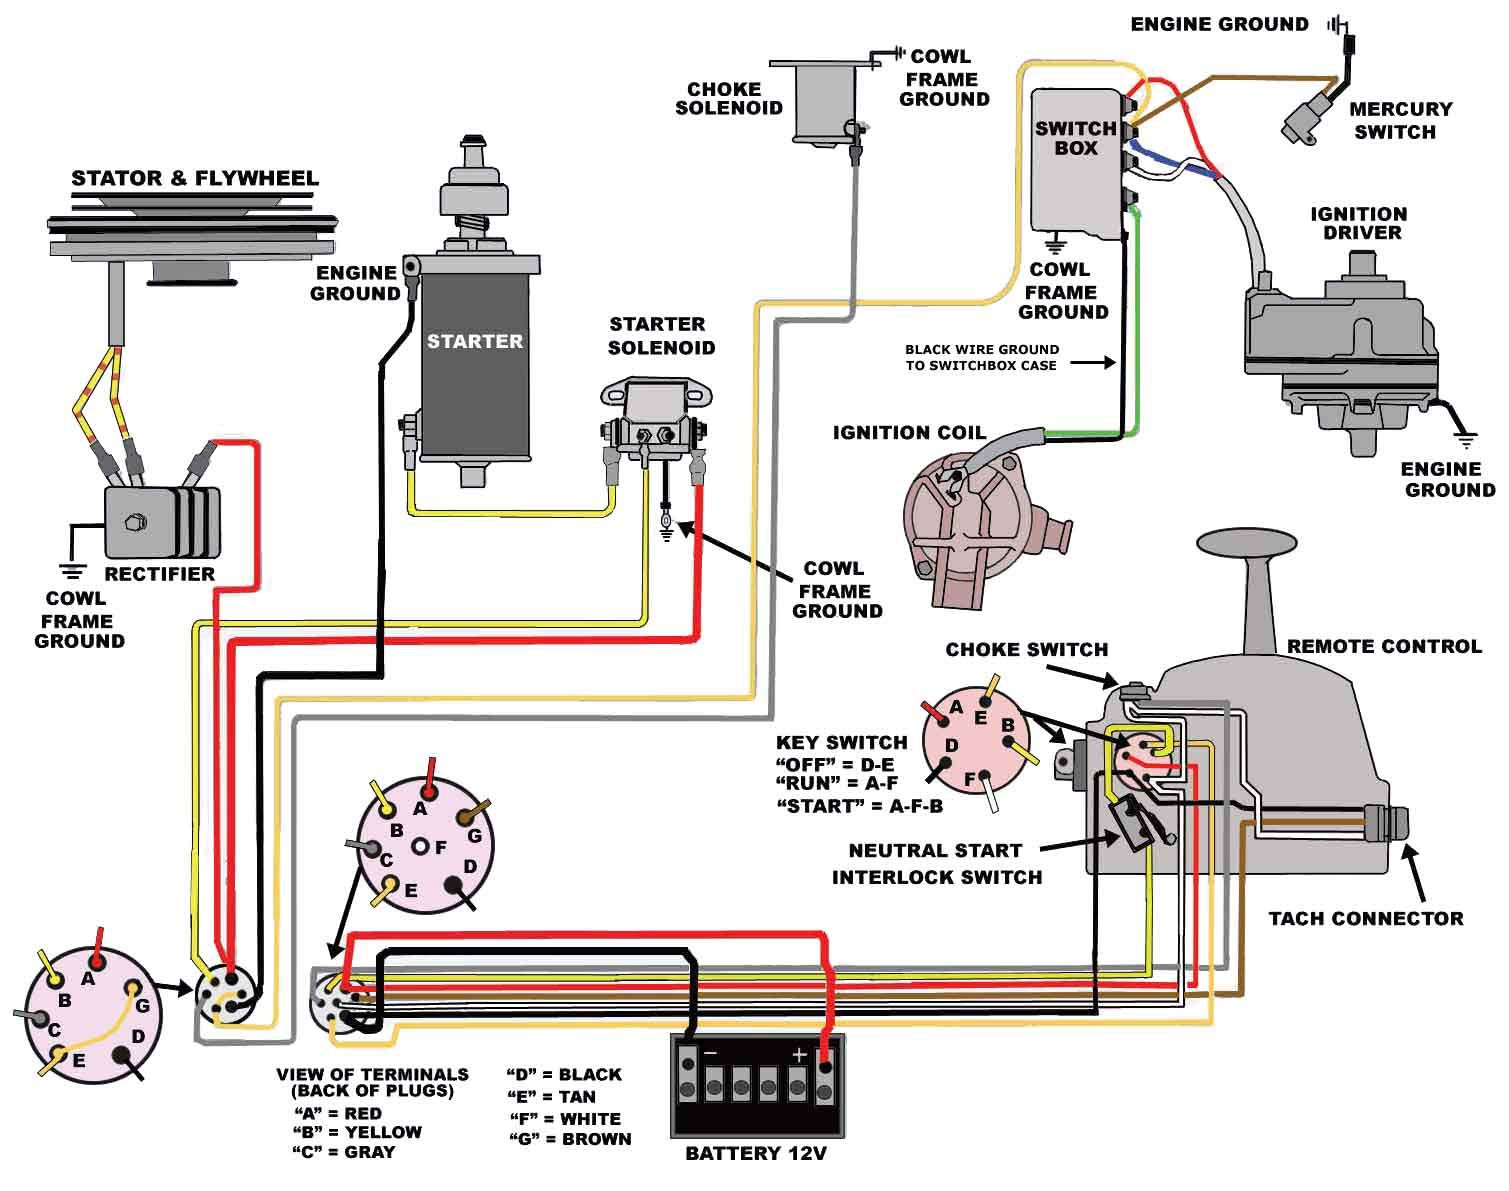 Mercury Outboard Wiring Harness Starting Know About Wiring Diagram \u2022  2002 Sable Wiring-Diagram Mercury Wiring Harness Diagram